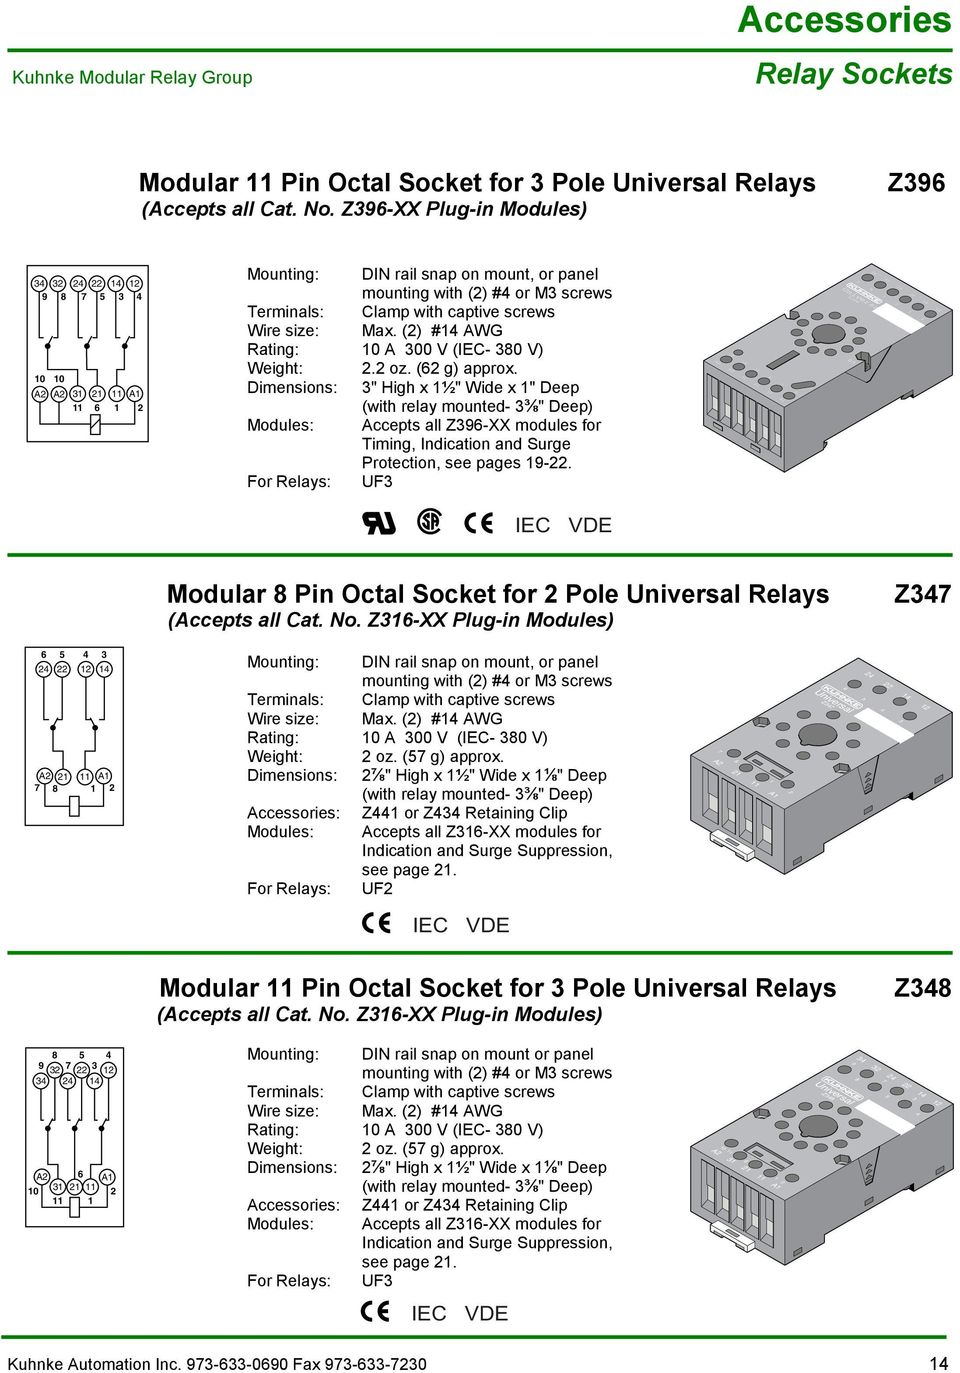 Kuhnke Technical Data Contact Details Pdf Relay Wiring Diagram 90 380 Heavy Duty Awg Rating A 300 V Iec Weight